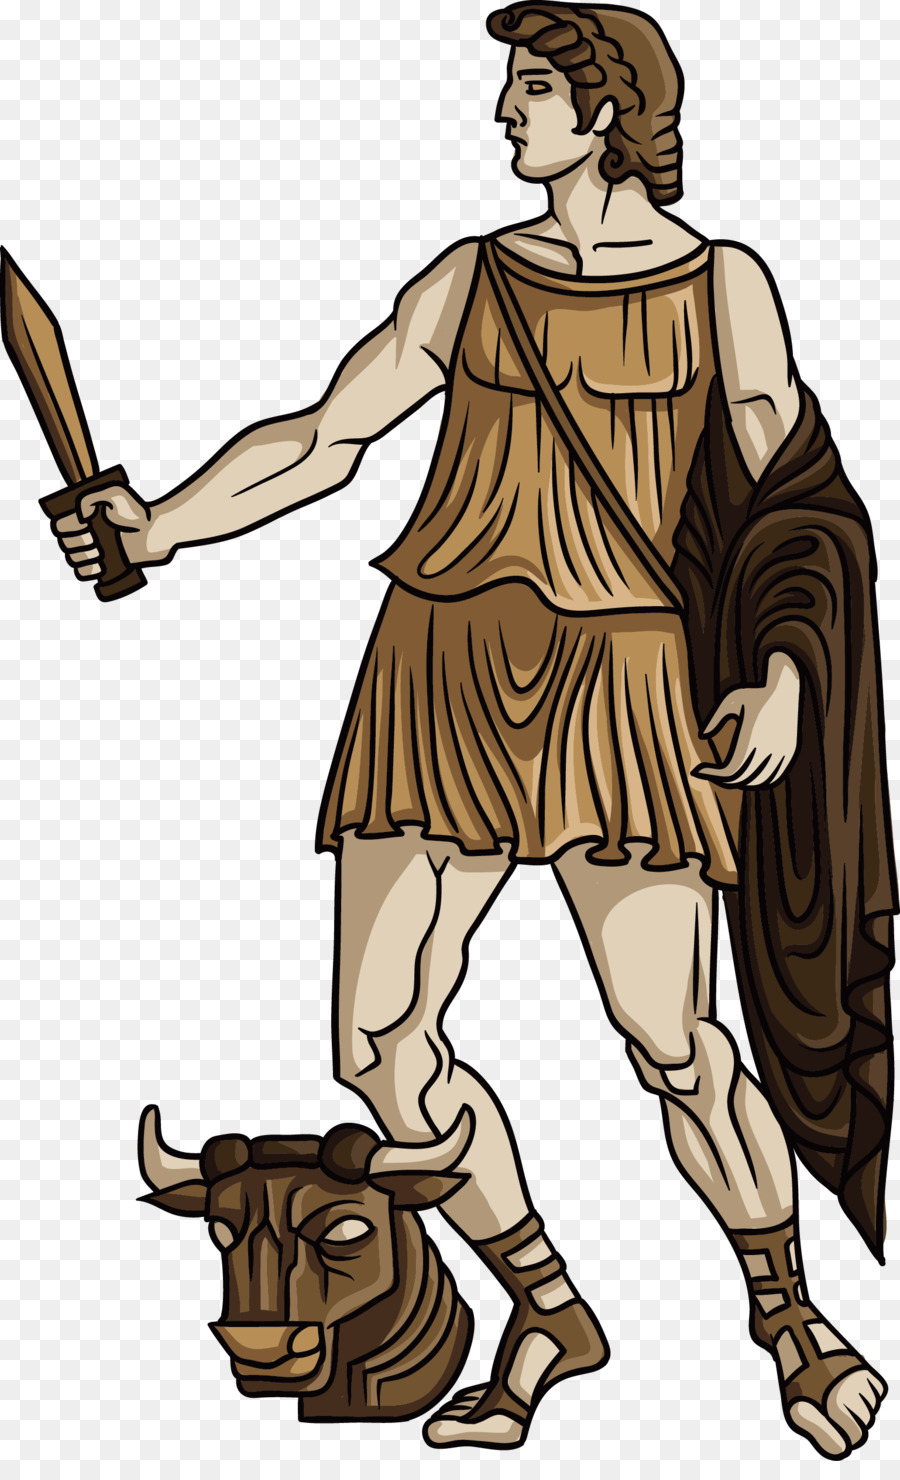 Theseus Ancient Greece Greek mythology Heracles Illustration - The man with  the dagger - Greek Mythology PNG HD